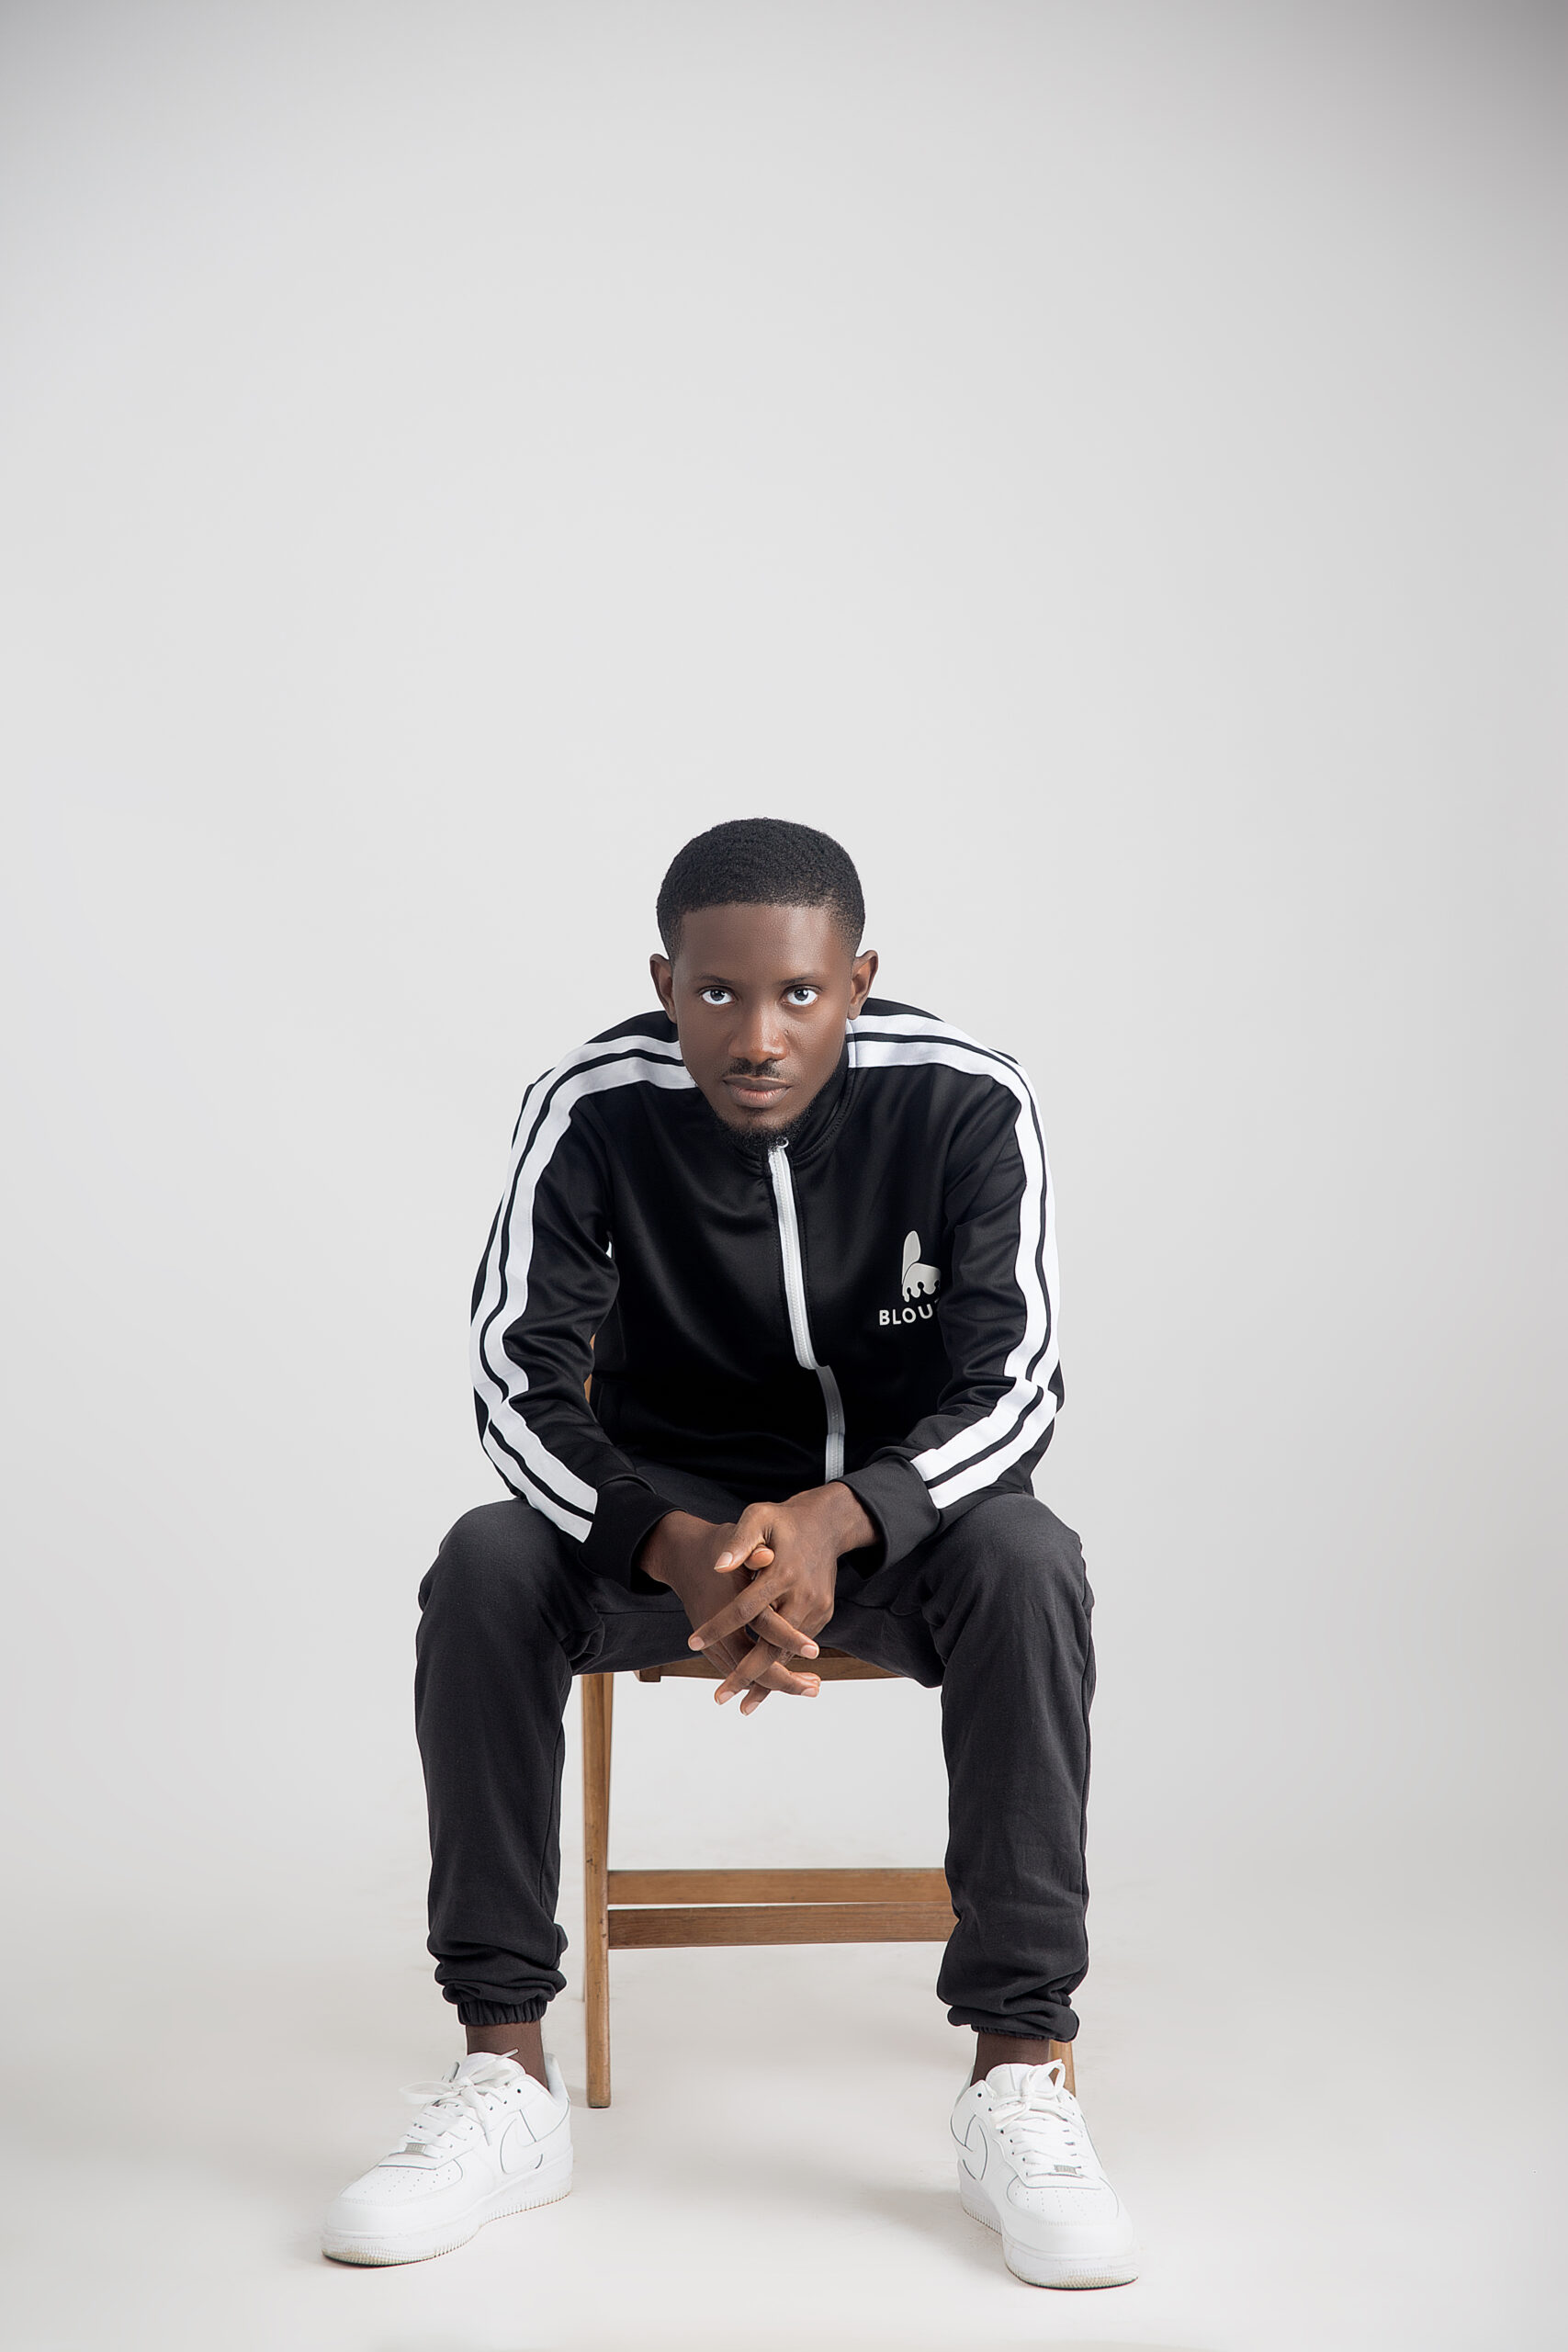 Interview With Nigerian Emcee Fecko Winner Of The Mic Africa Music Competition